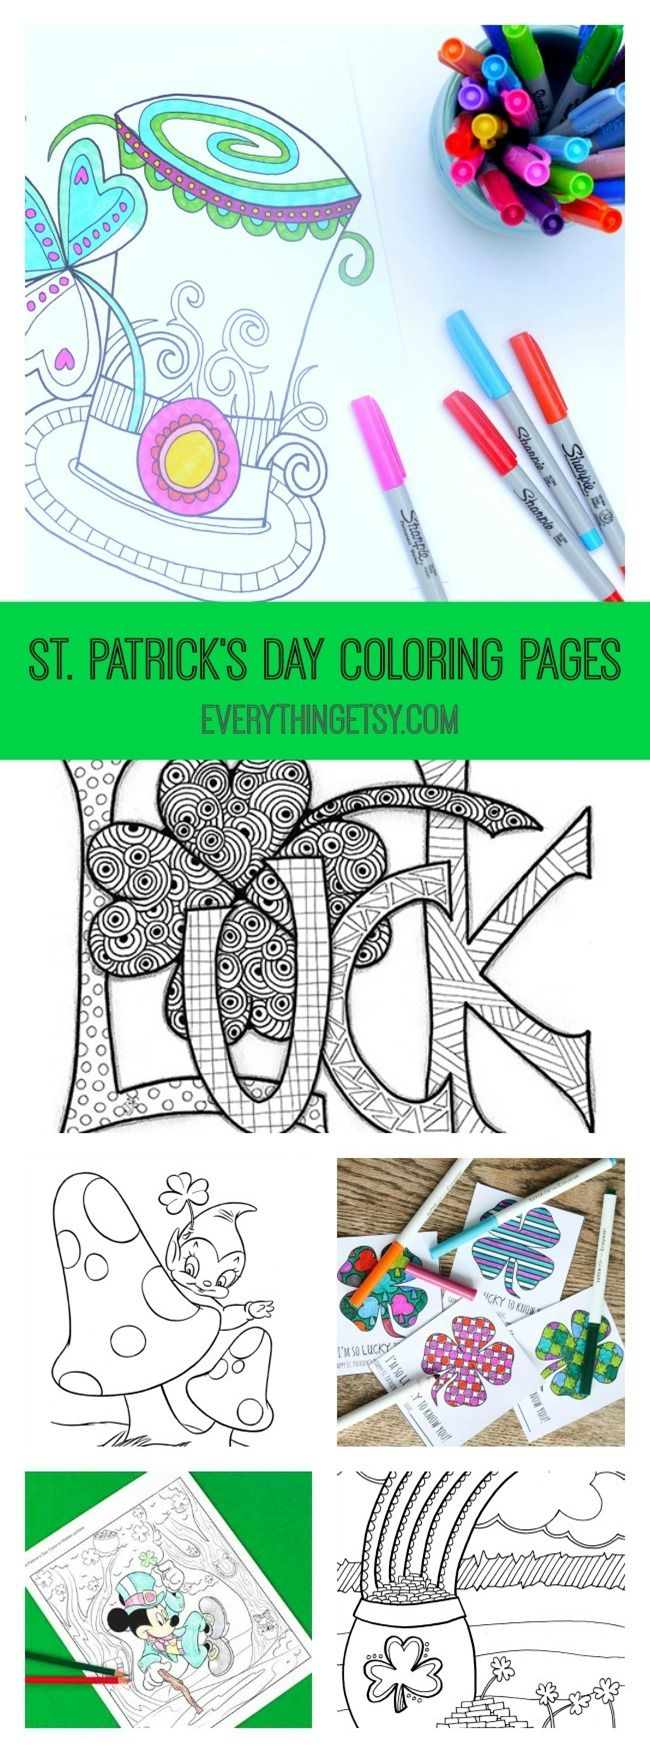 The zoology coloring book - 12 St Patrick S Day Printable Coloring Pages For Adults Kids